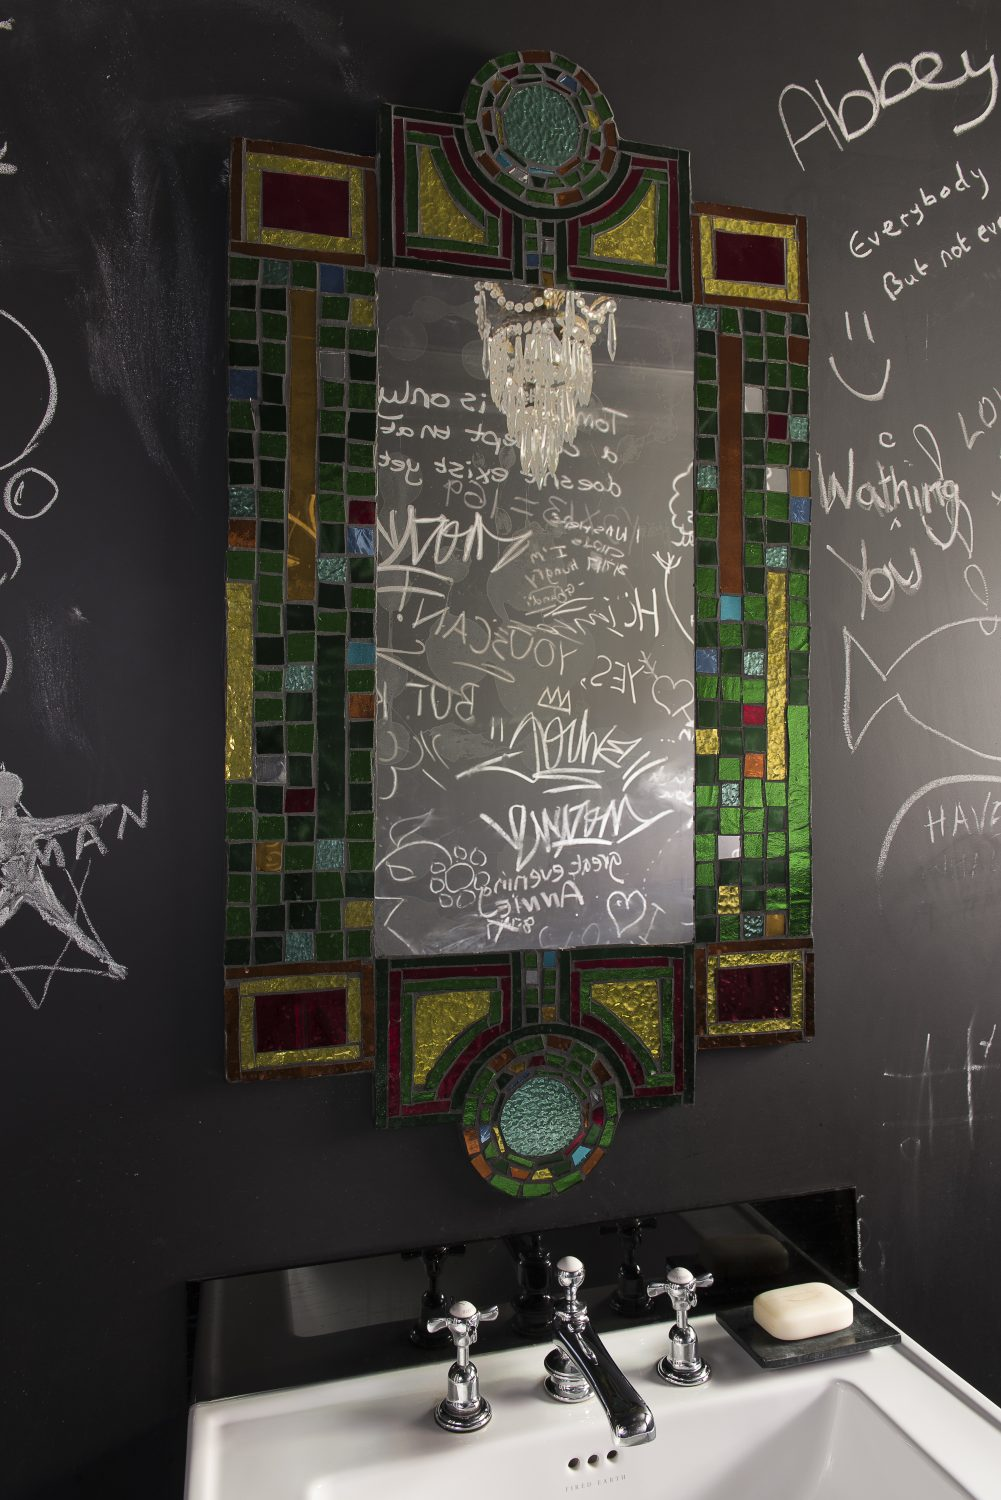 The walls in the 'blackboard loo' have been enthusiastically graffitied by the whole family Above: The loo window is filled with coloured Duralex tumblers, reflected in the mirror on the window sill